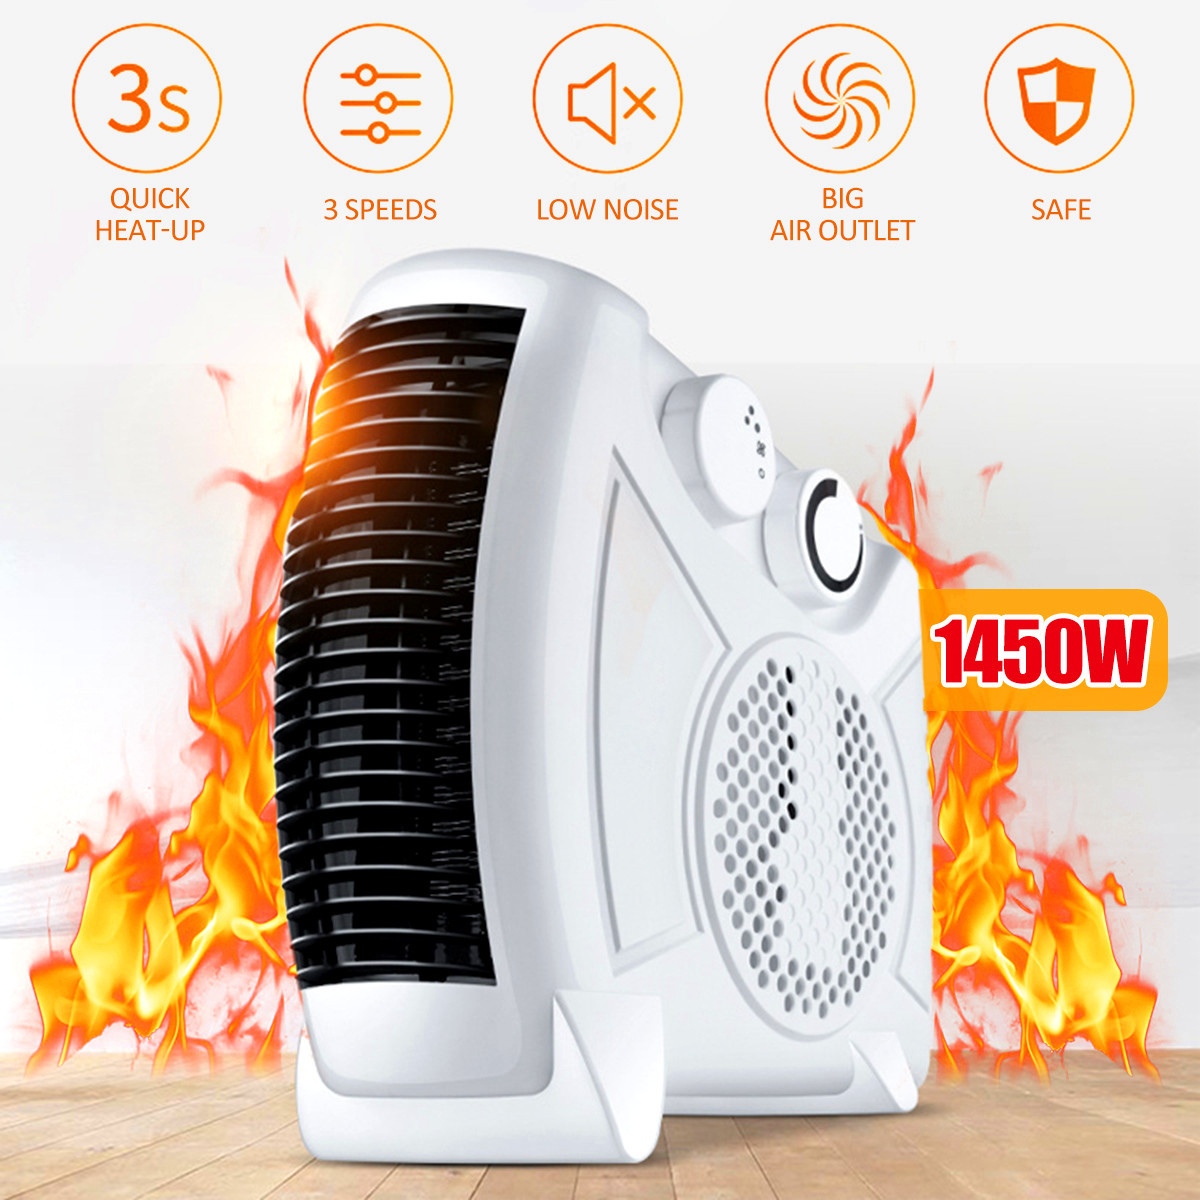 220V 1450W US Plug Electric Heater Mini Fan Heater Desktop Household Handy Heater Stove Radiator Warmer Machine For Winter